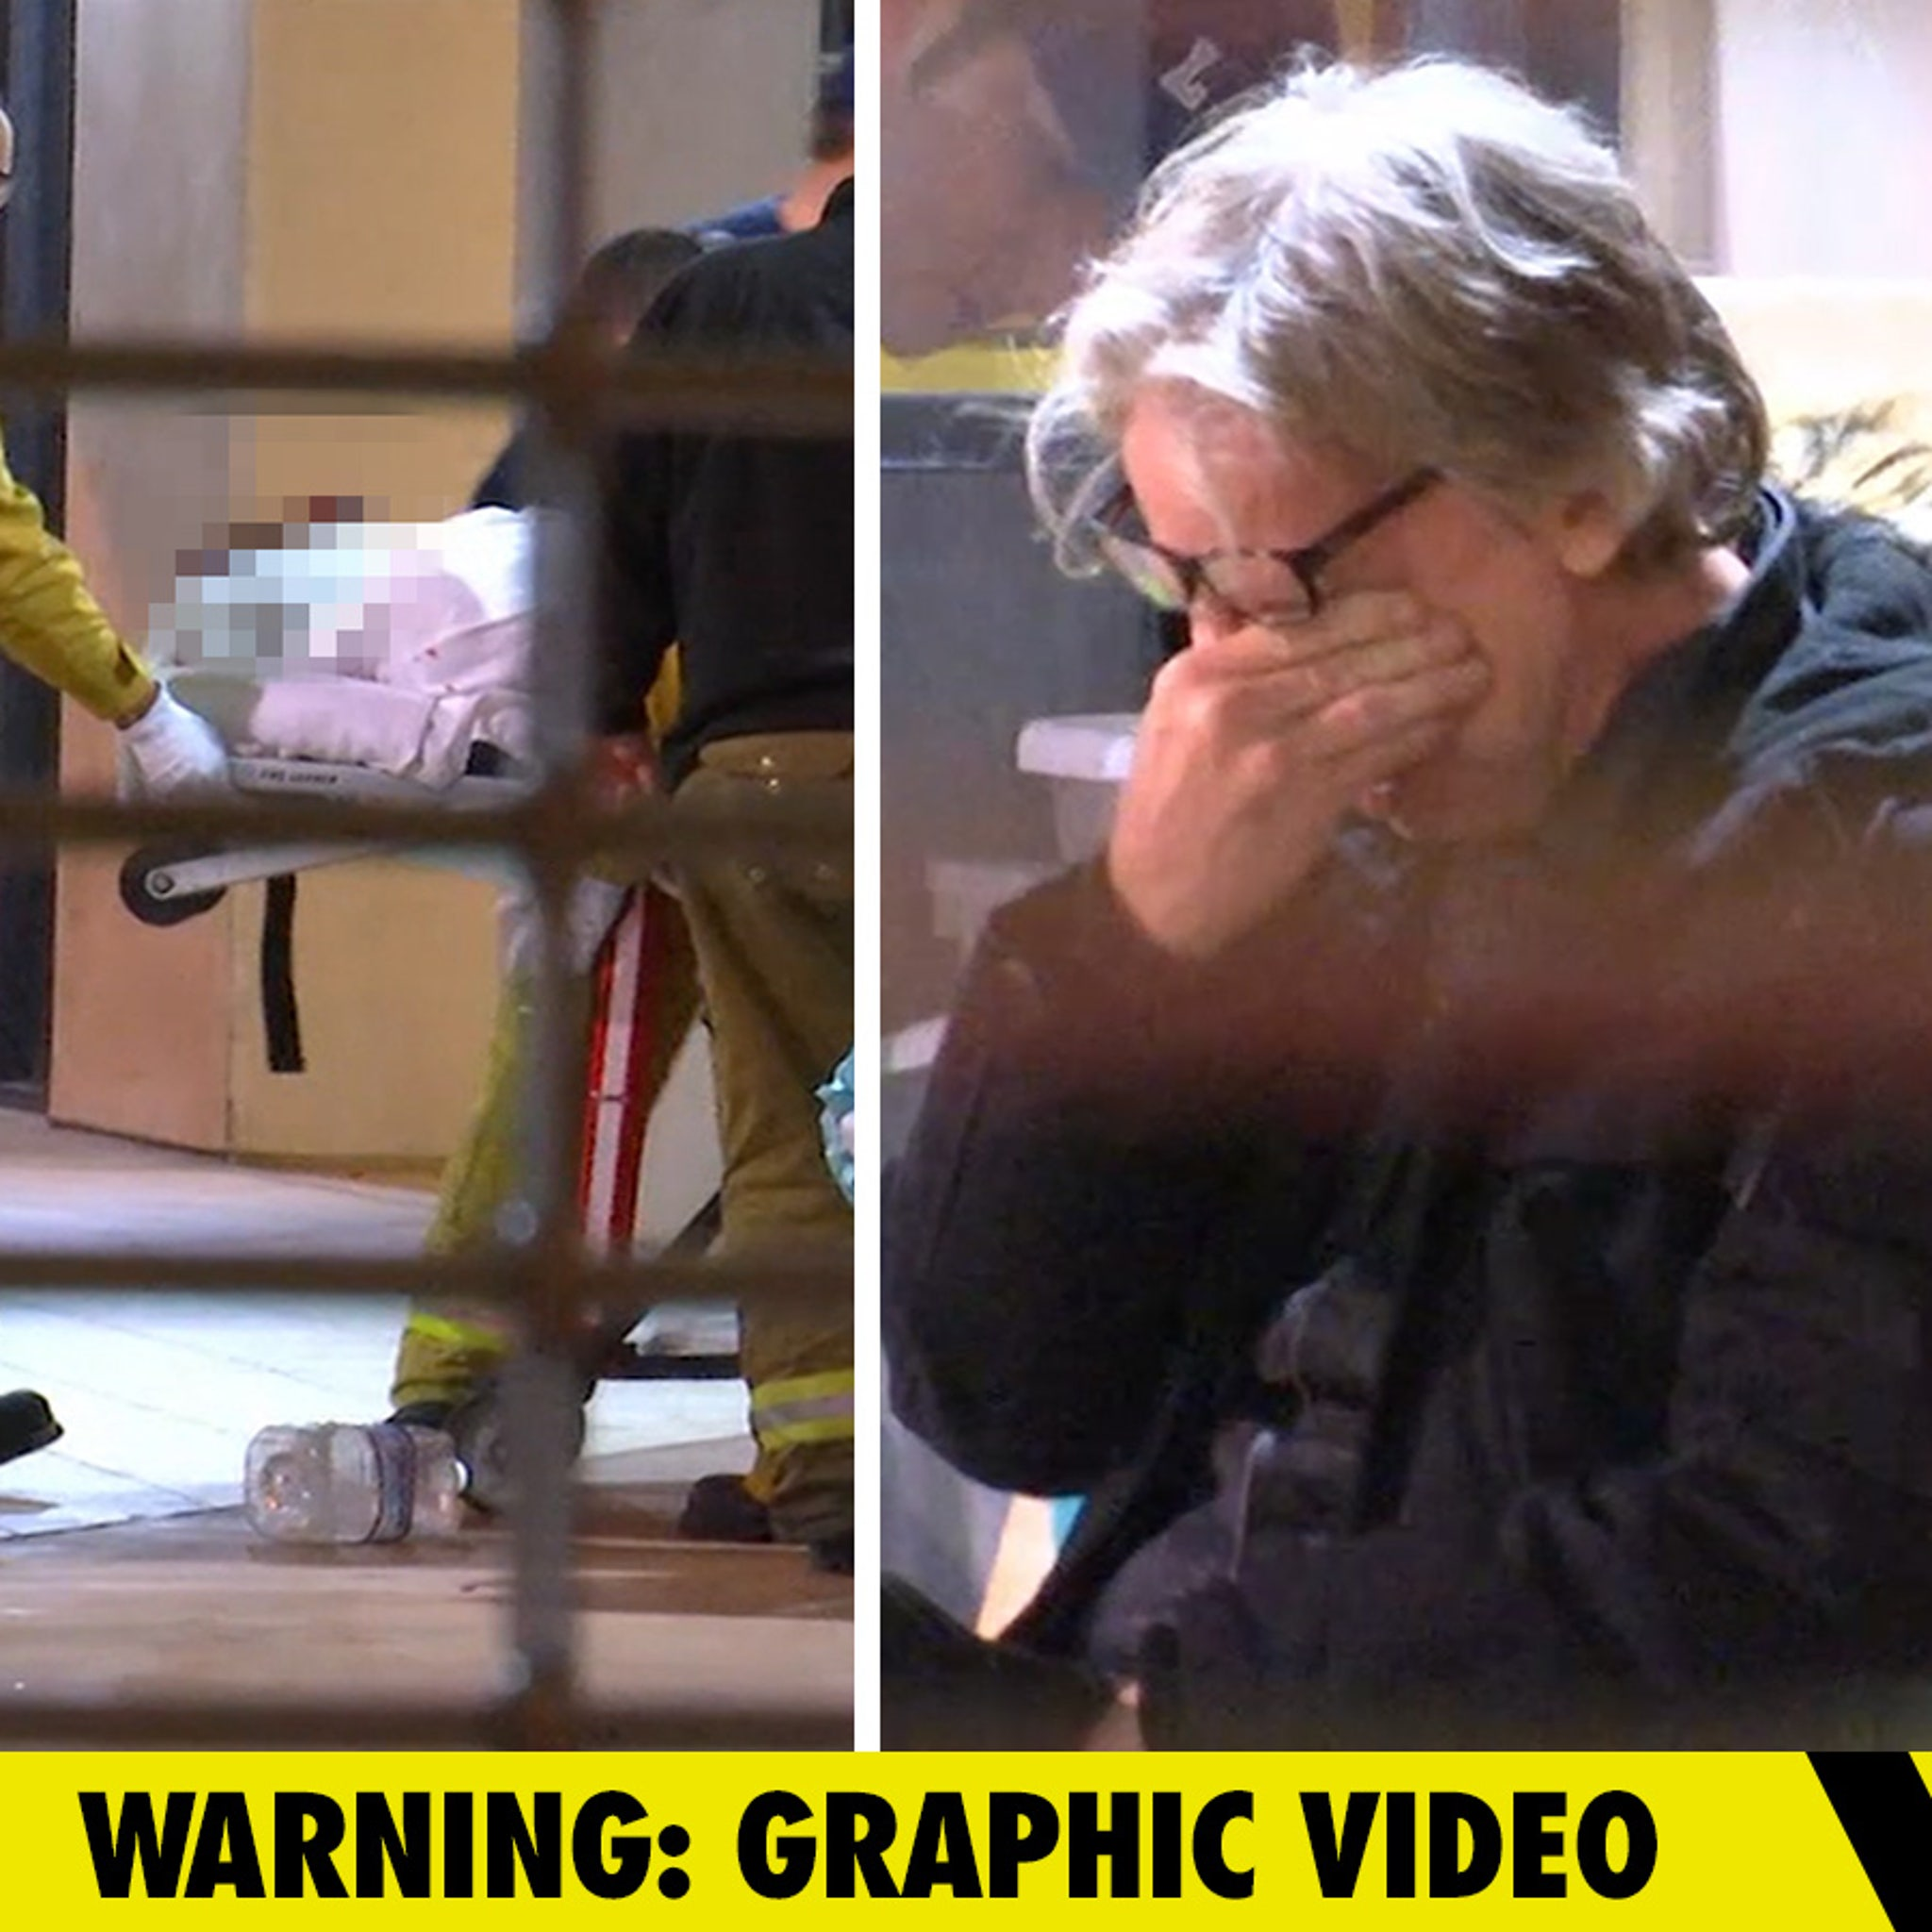 Andy Dick Distraught After Man Shoots Himself in the Head in His Art Studio